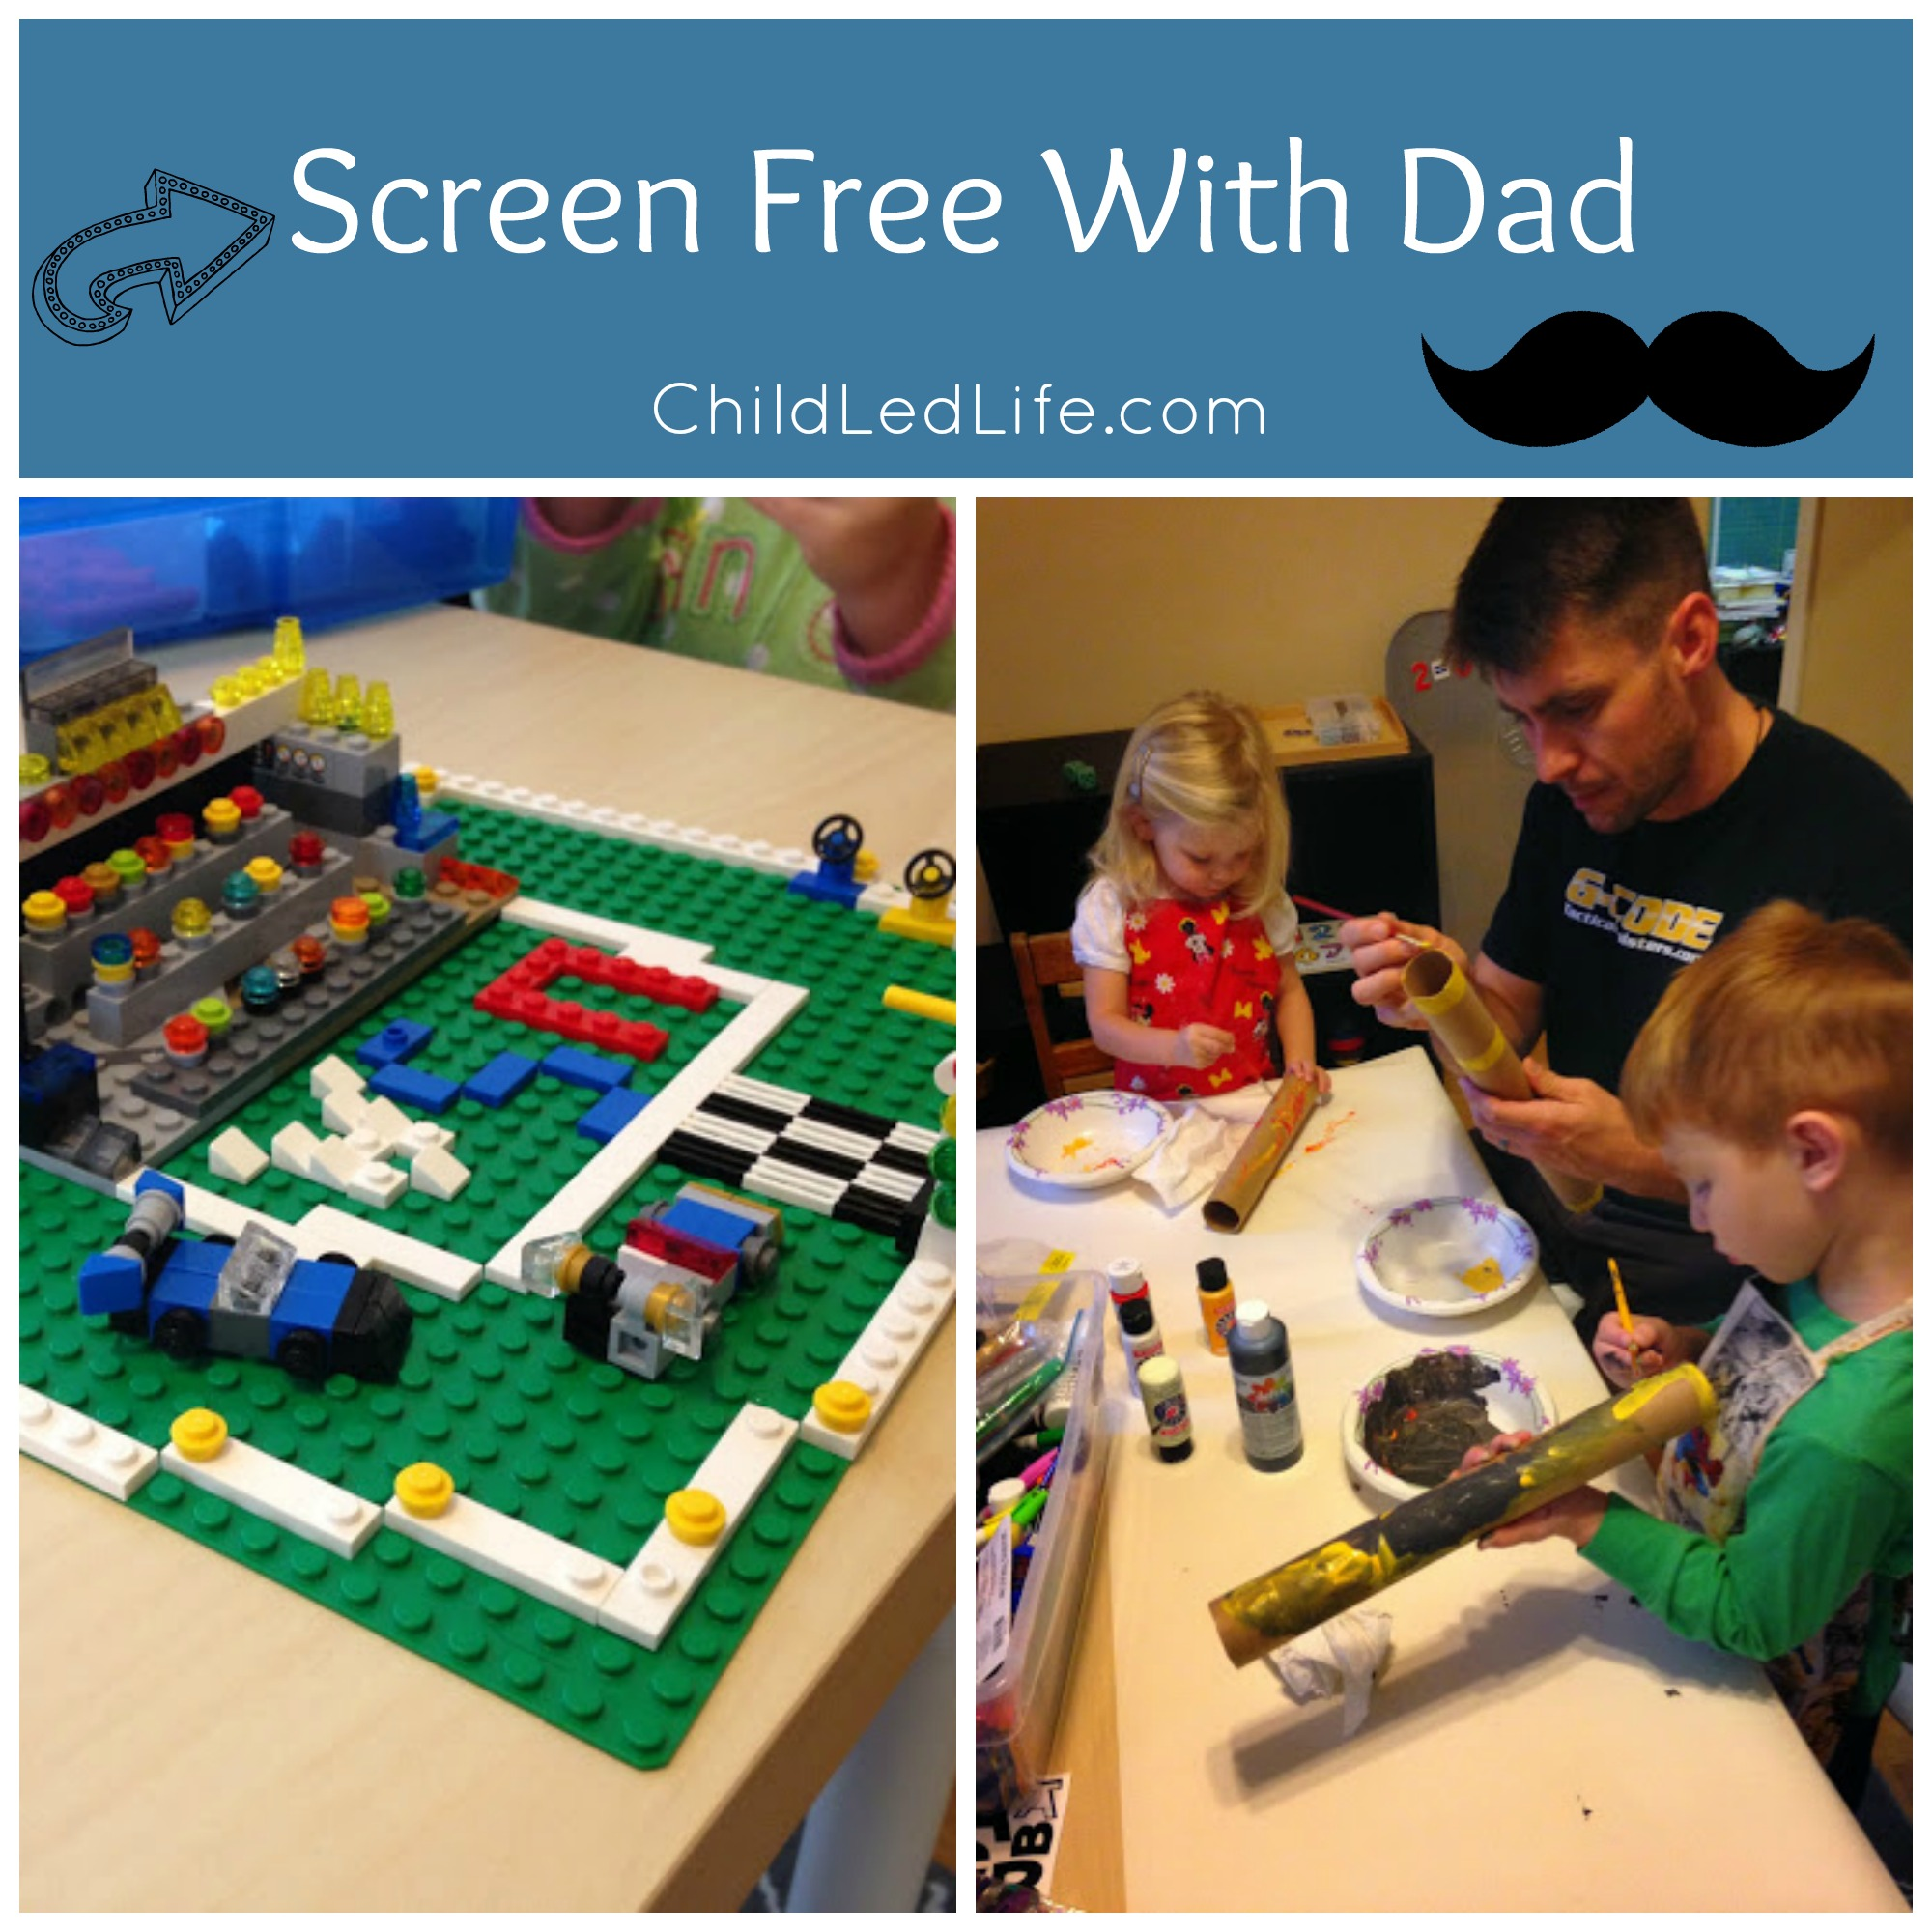 Screen Free with Dad